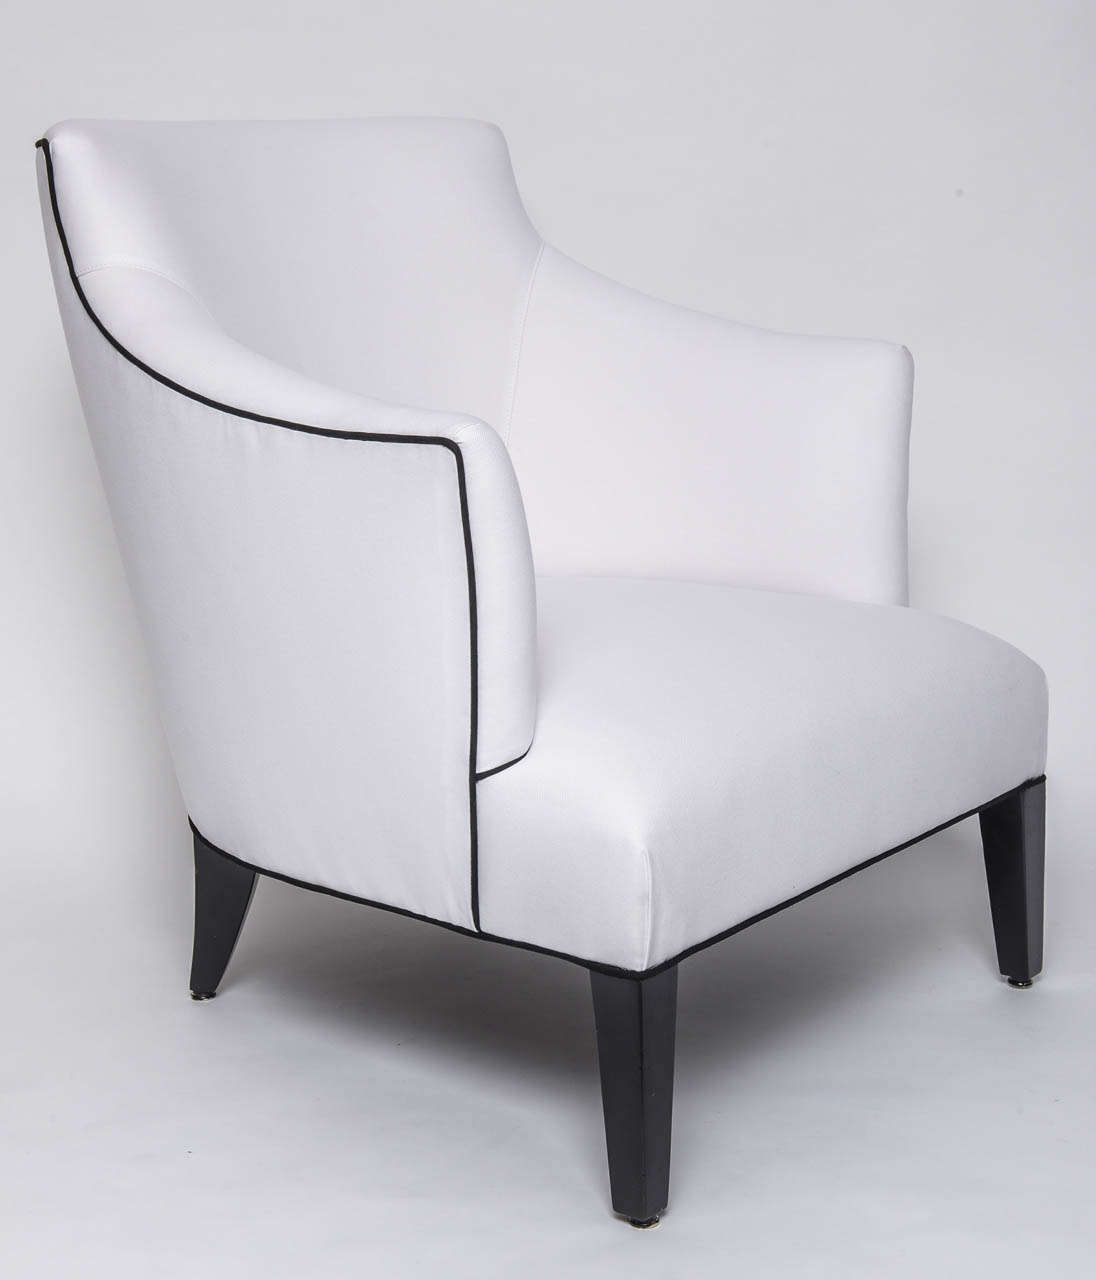 Studio Built Chair Designed by Susane R, 1940s Inspired Called